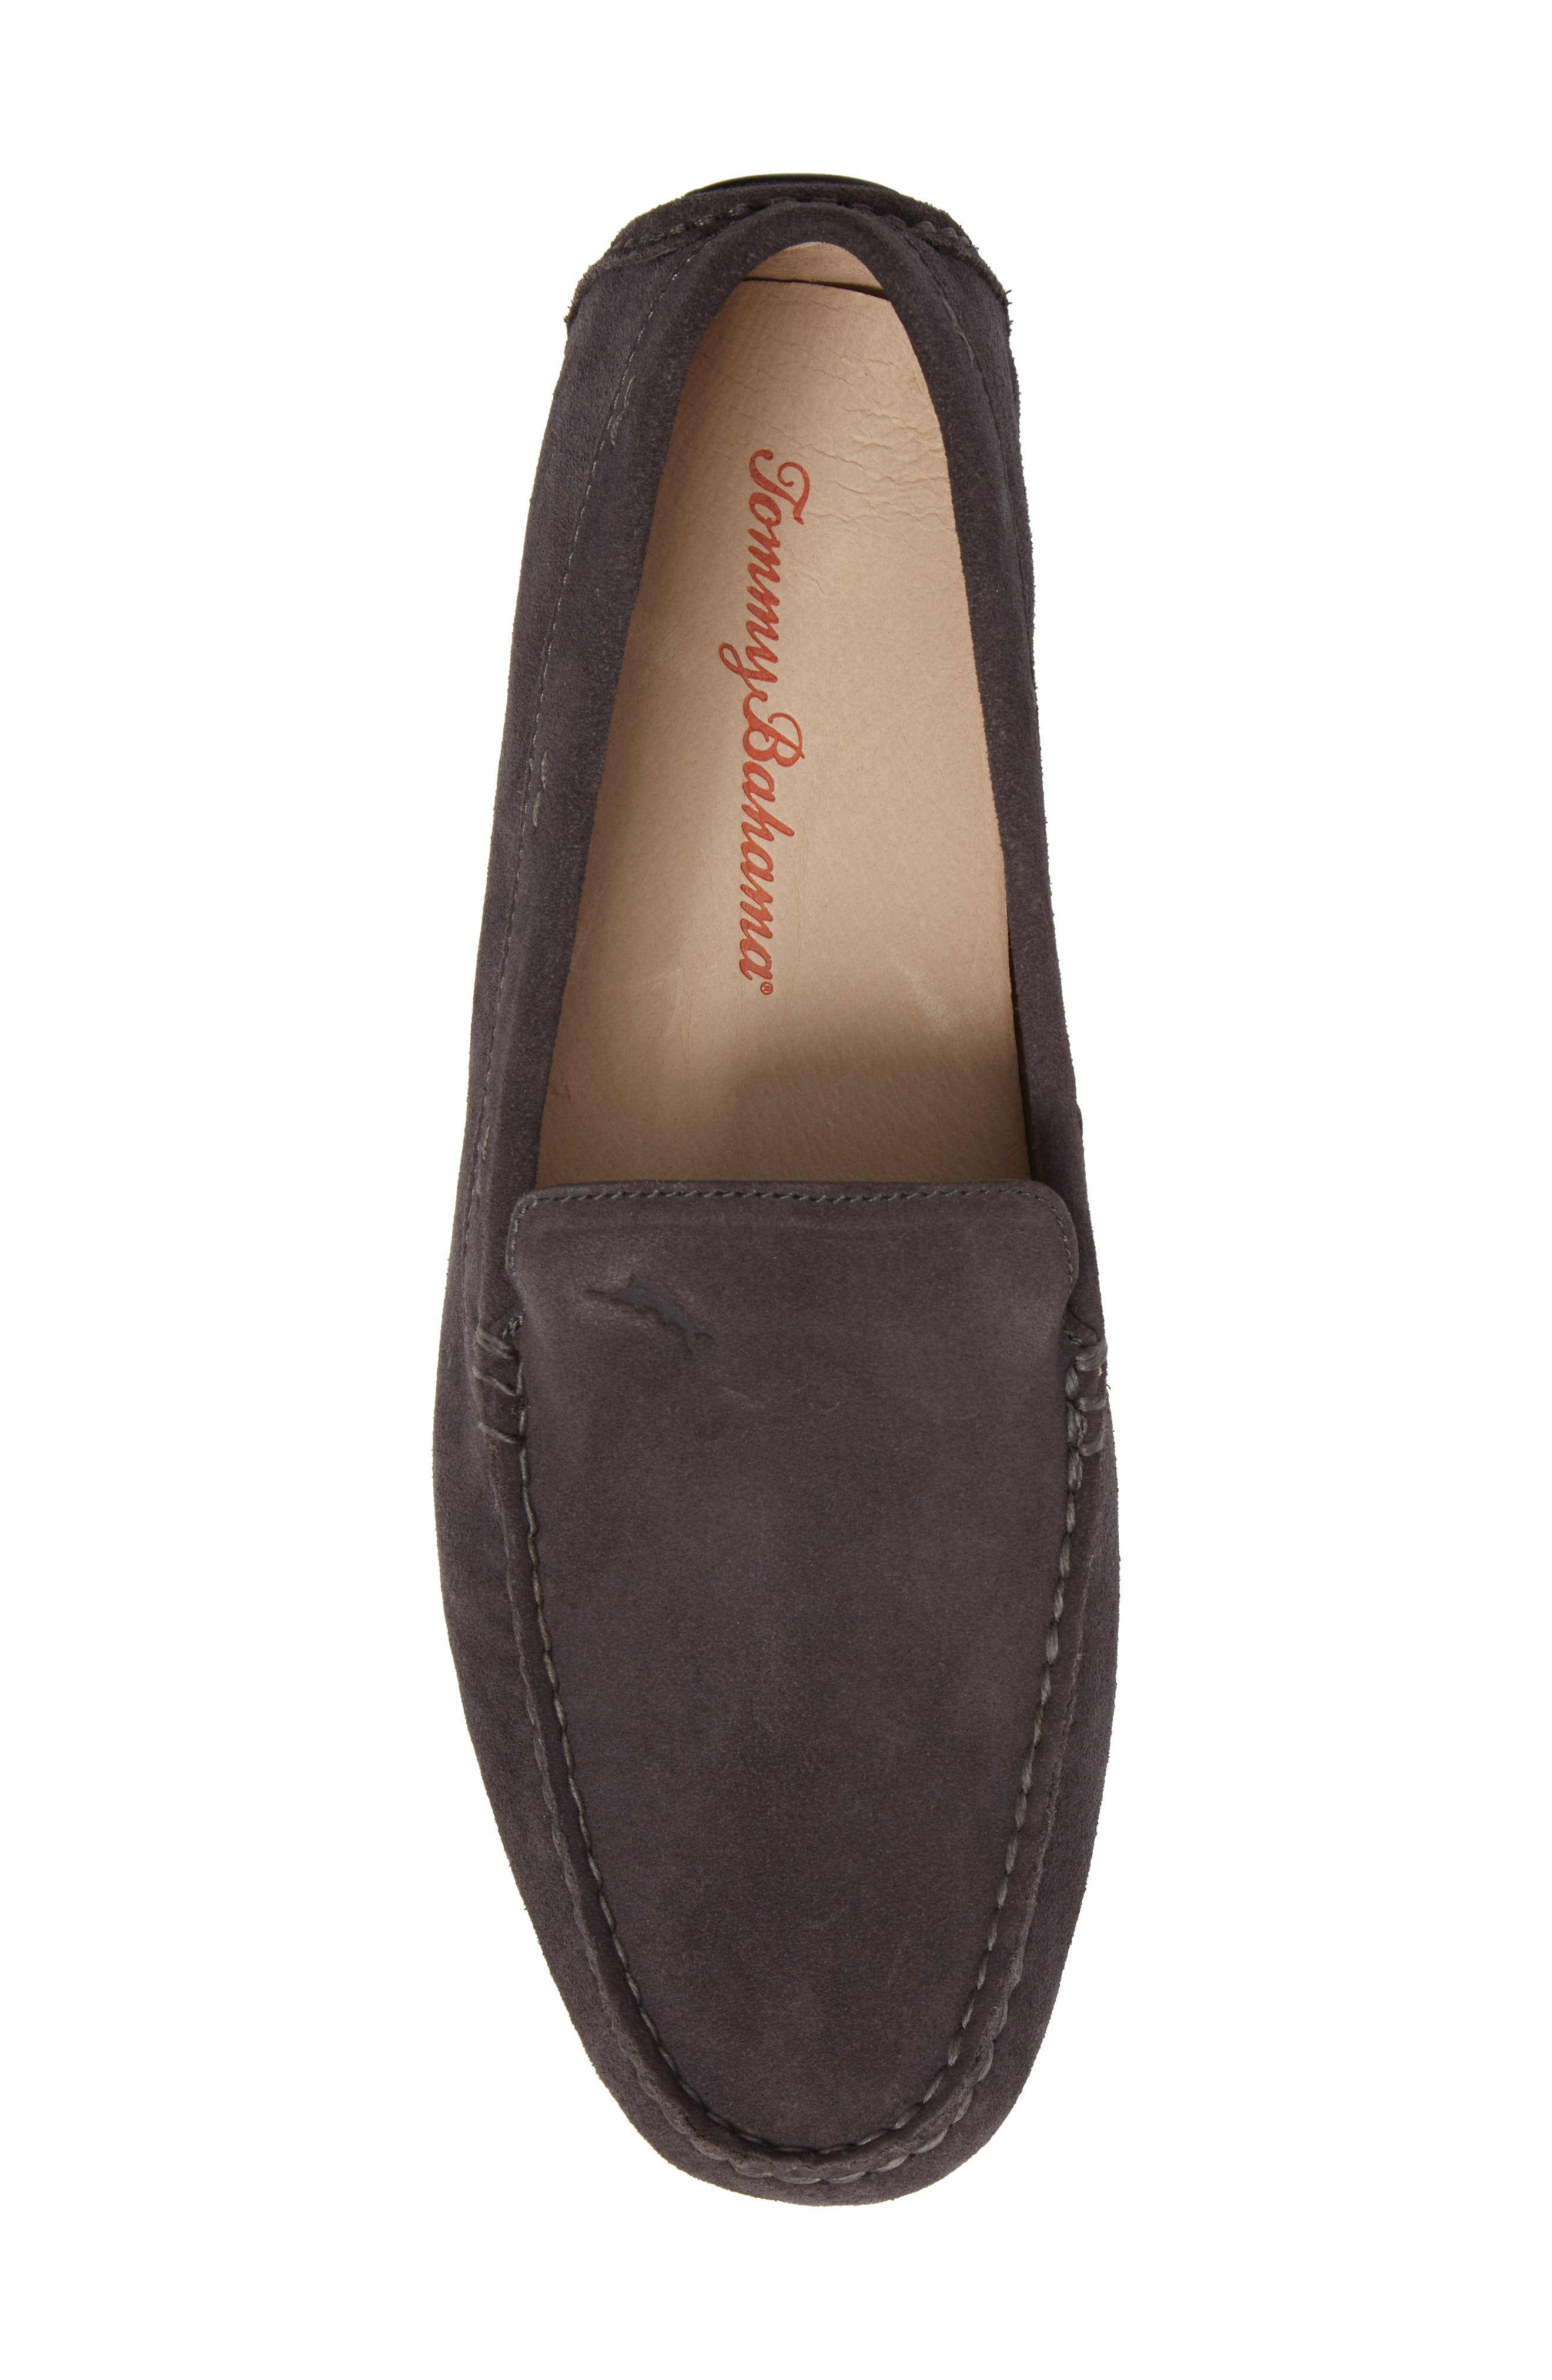 Pagota Driving Loafer,                             Alternate thumbnail 25, color,